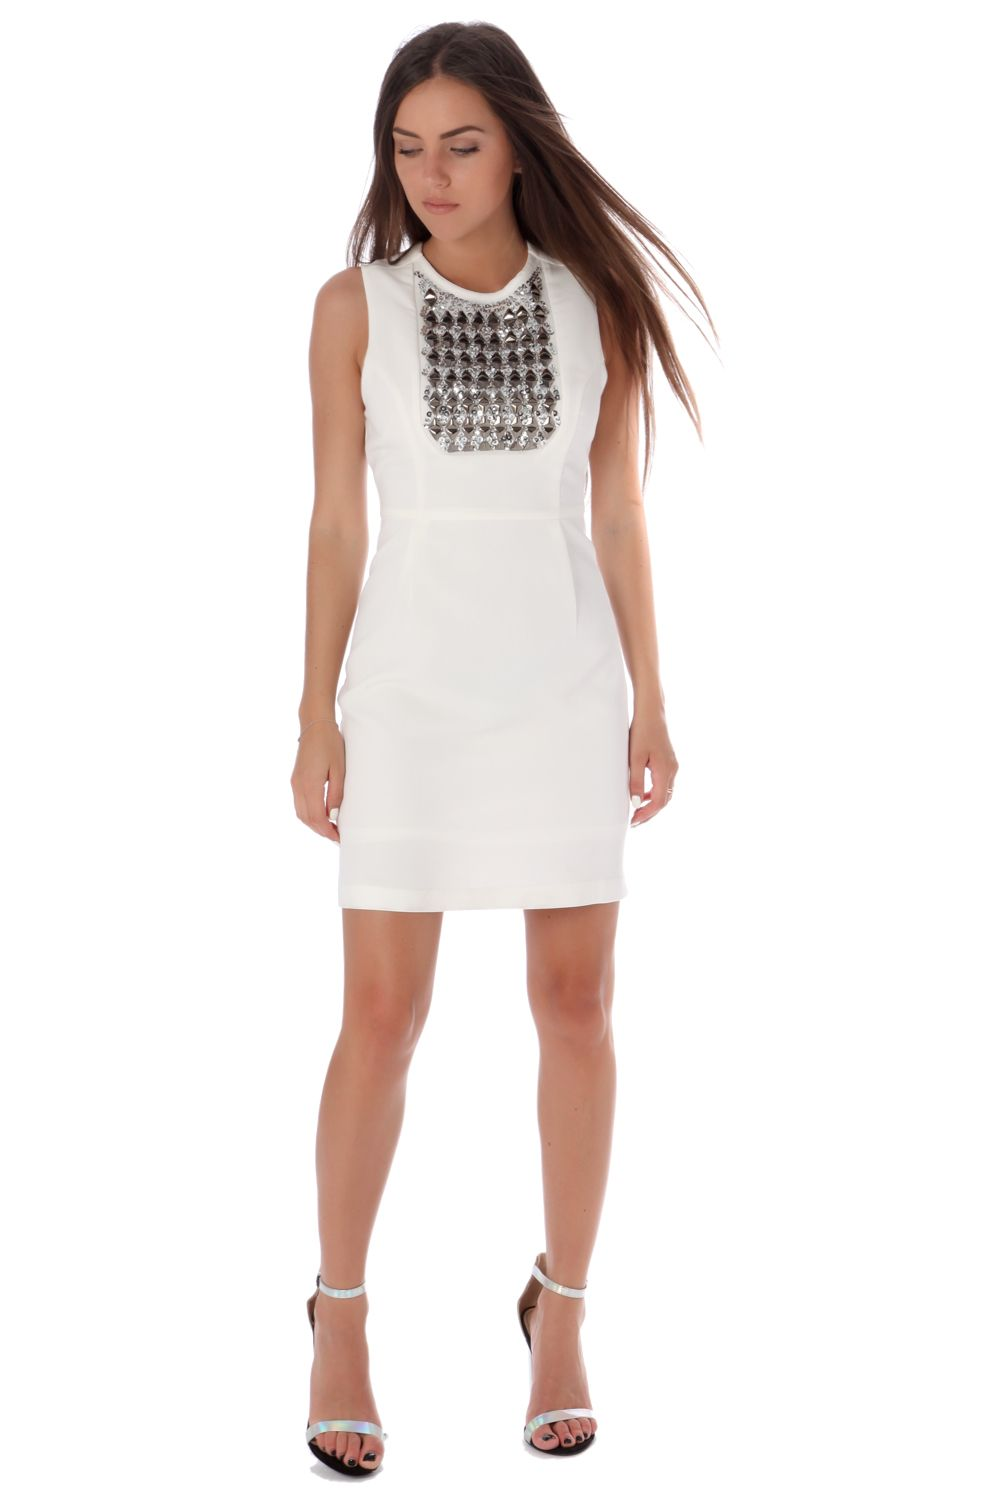 White Mini Dress With Studded Bib-Women - Apparel - Dresses - Day to Night-L-Keyomi-Sook